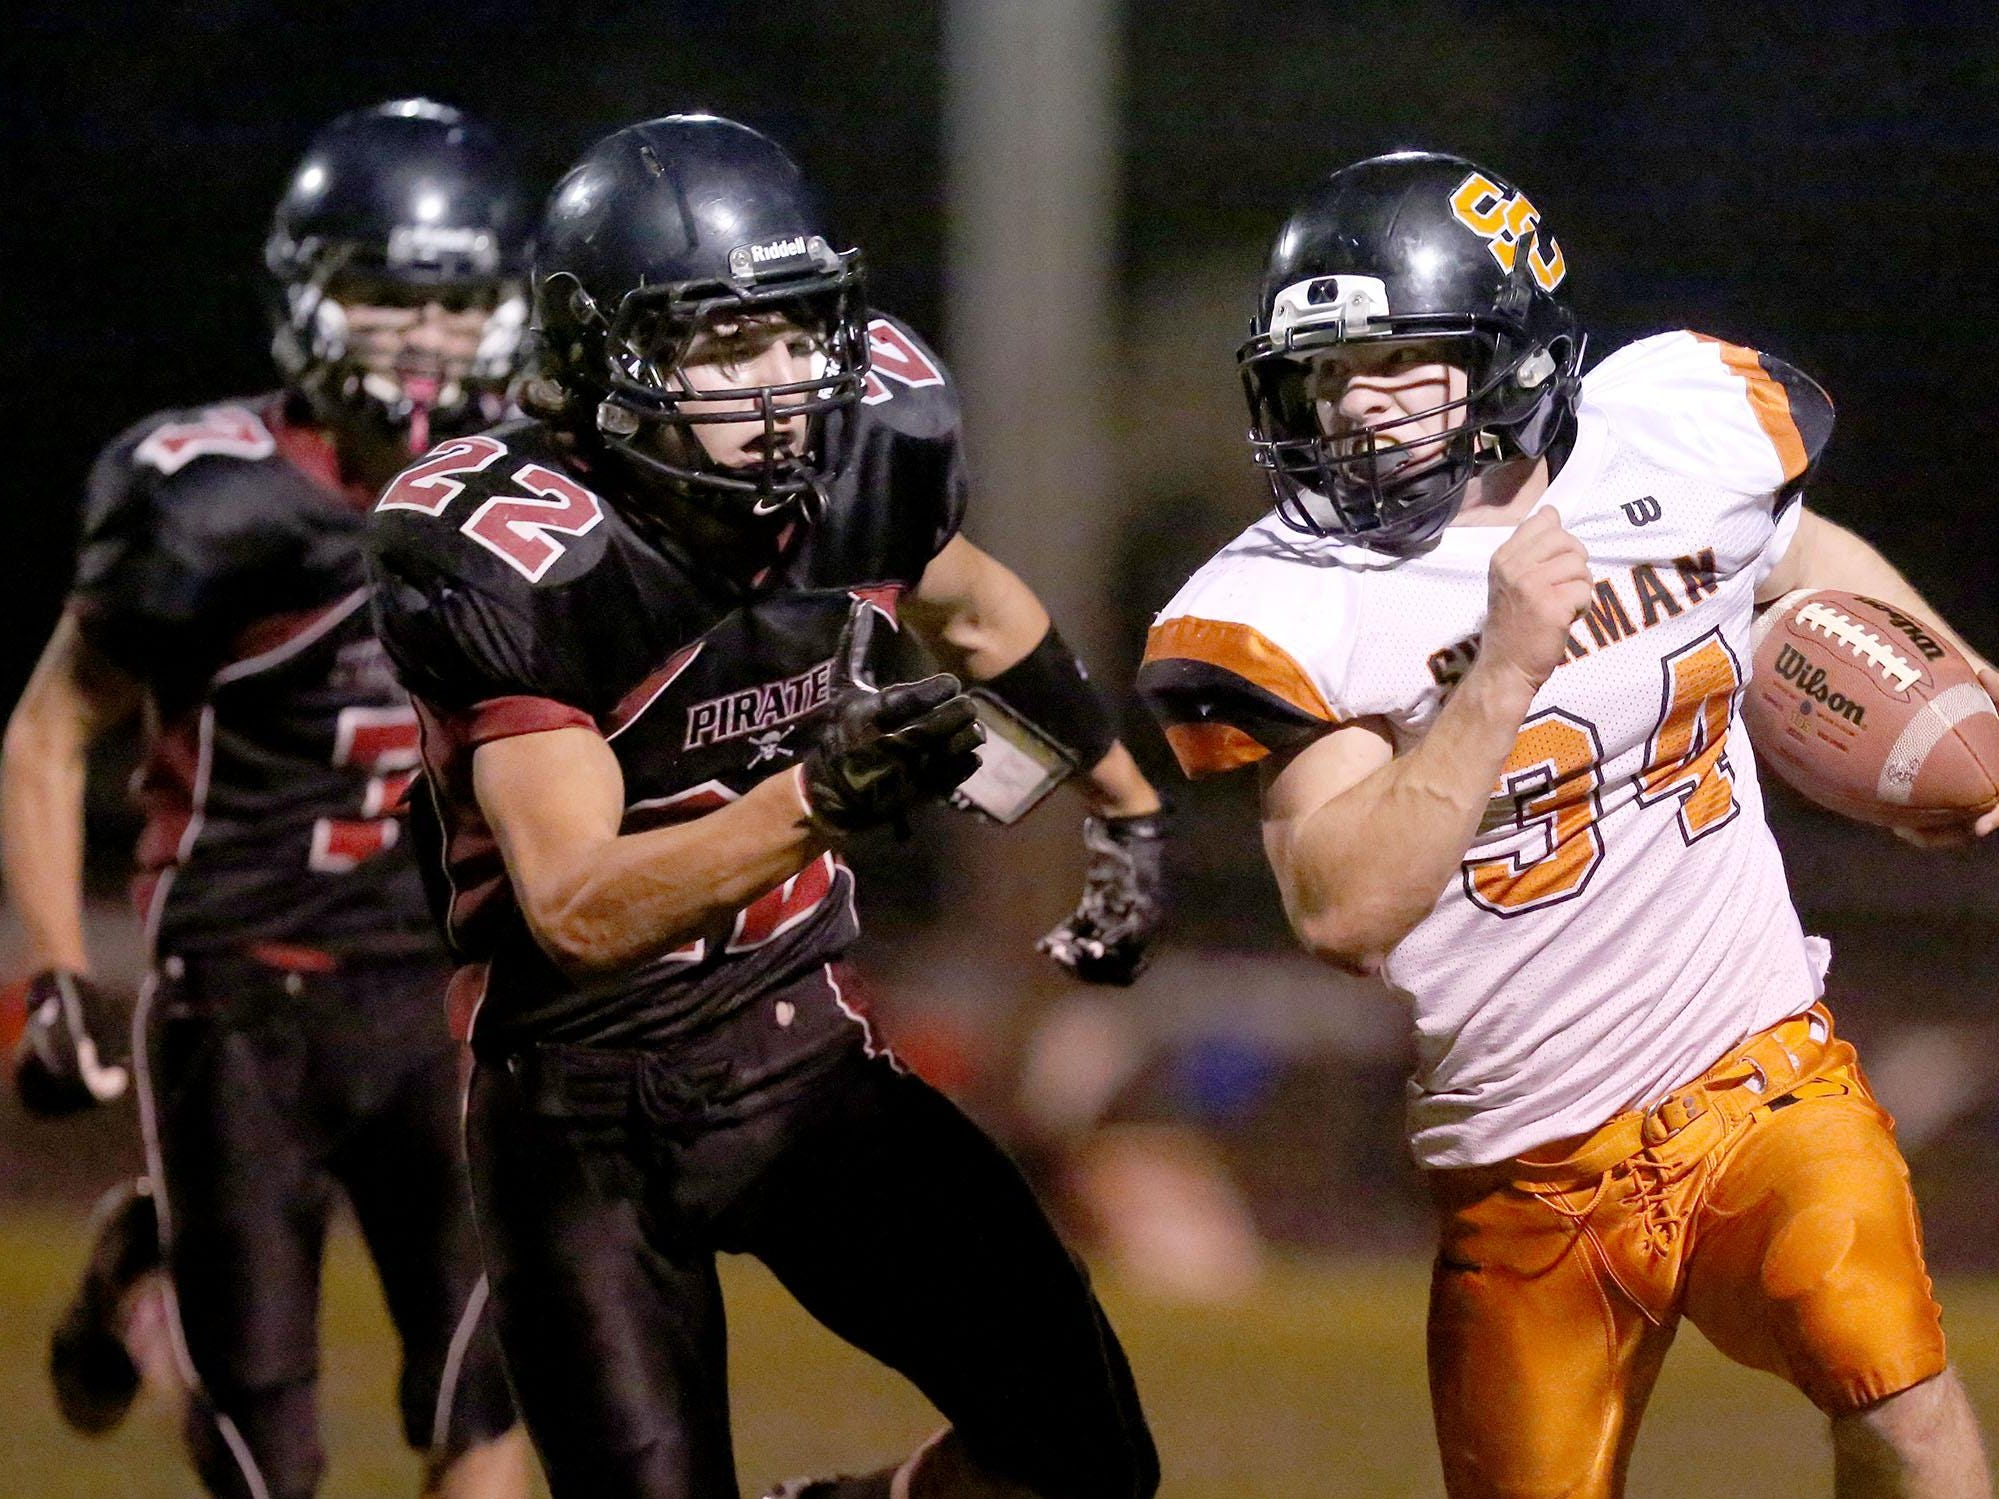 Perrydale's Brant Barnes (22) chases down Sherman junior Maverick Winslow (34) during their football game on Friday, Oct. 23, 2015, in Perrydale, Ore.